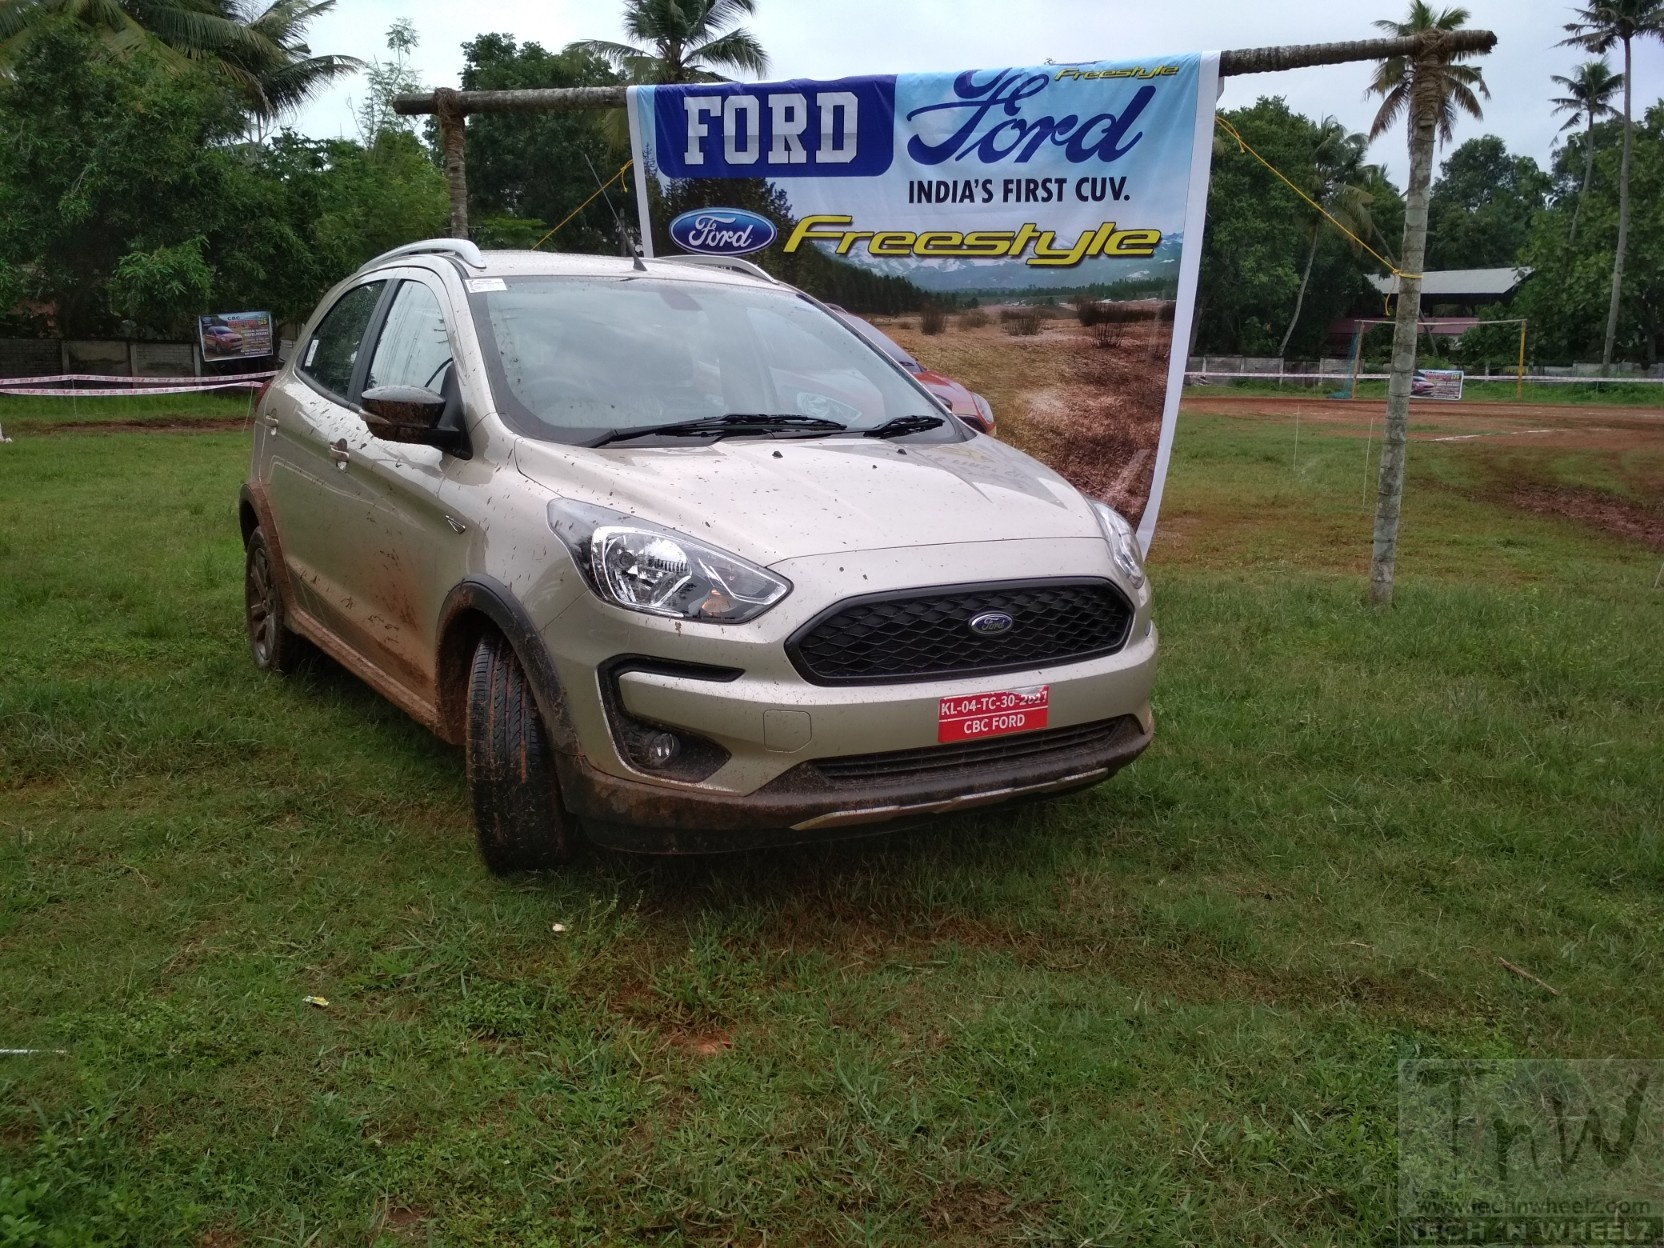 Ford Freestyle goes off-road at CBC Ford Fest in Mavelikkara, Kerala